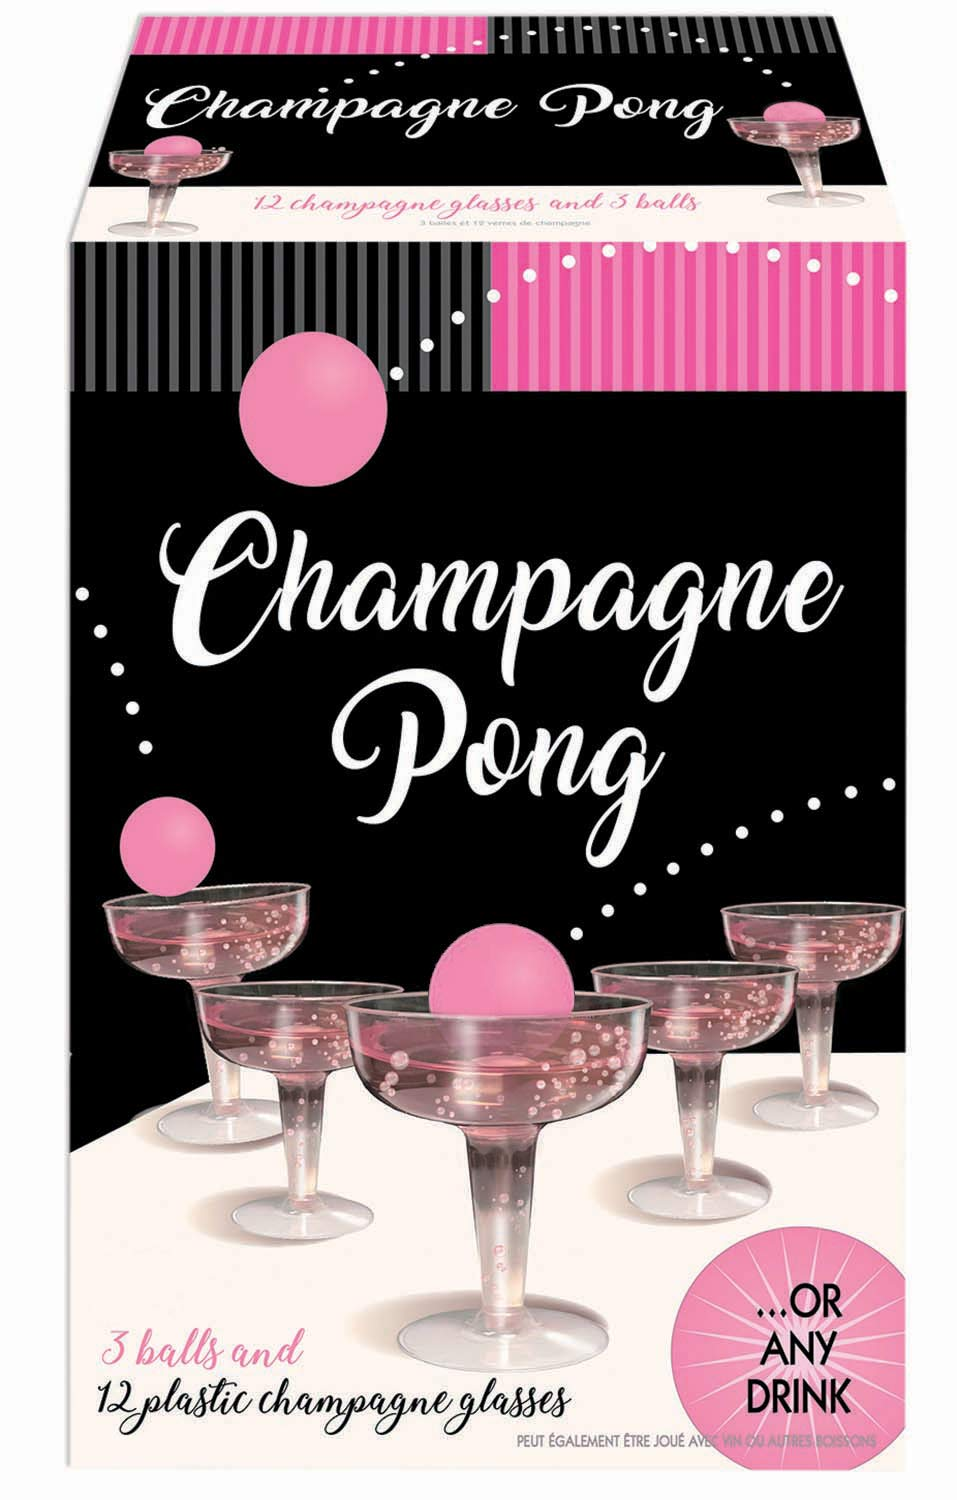 Champagne Prosecco Pong Luxury Kit - Alternative to Beer Pong Game Set - for Birthday, Bachelor, Bachelorette, New Years, Celebration, Party Gift - 12 Plastic Cups and 3 Pink Balls by Luxury Pong Kits